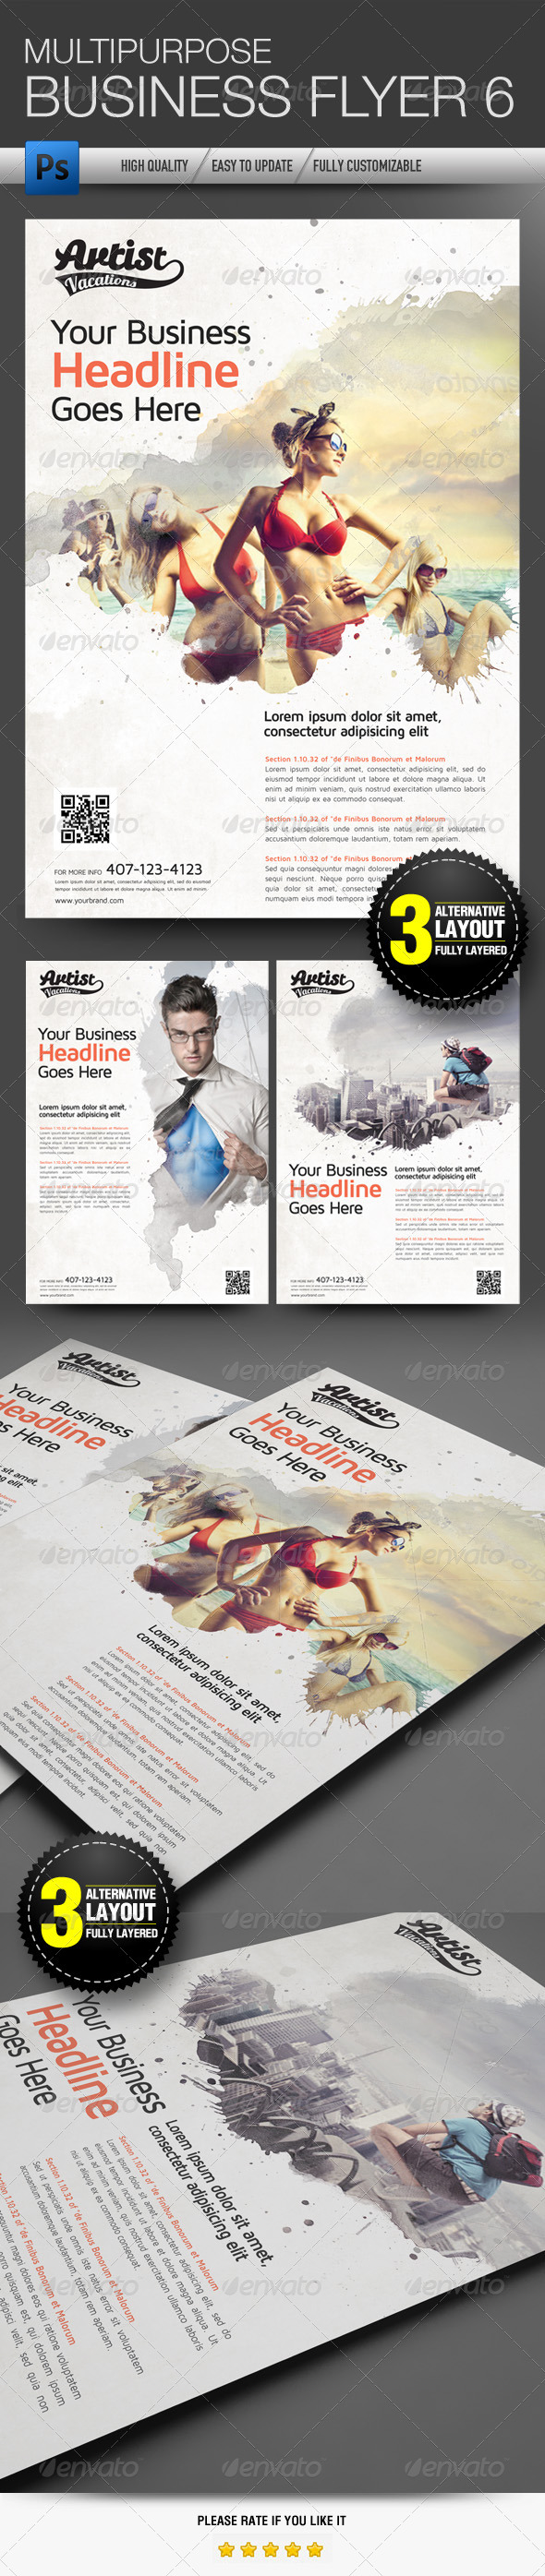 GraphicRiver Multipurpose Business Flyer 6 5059142